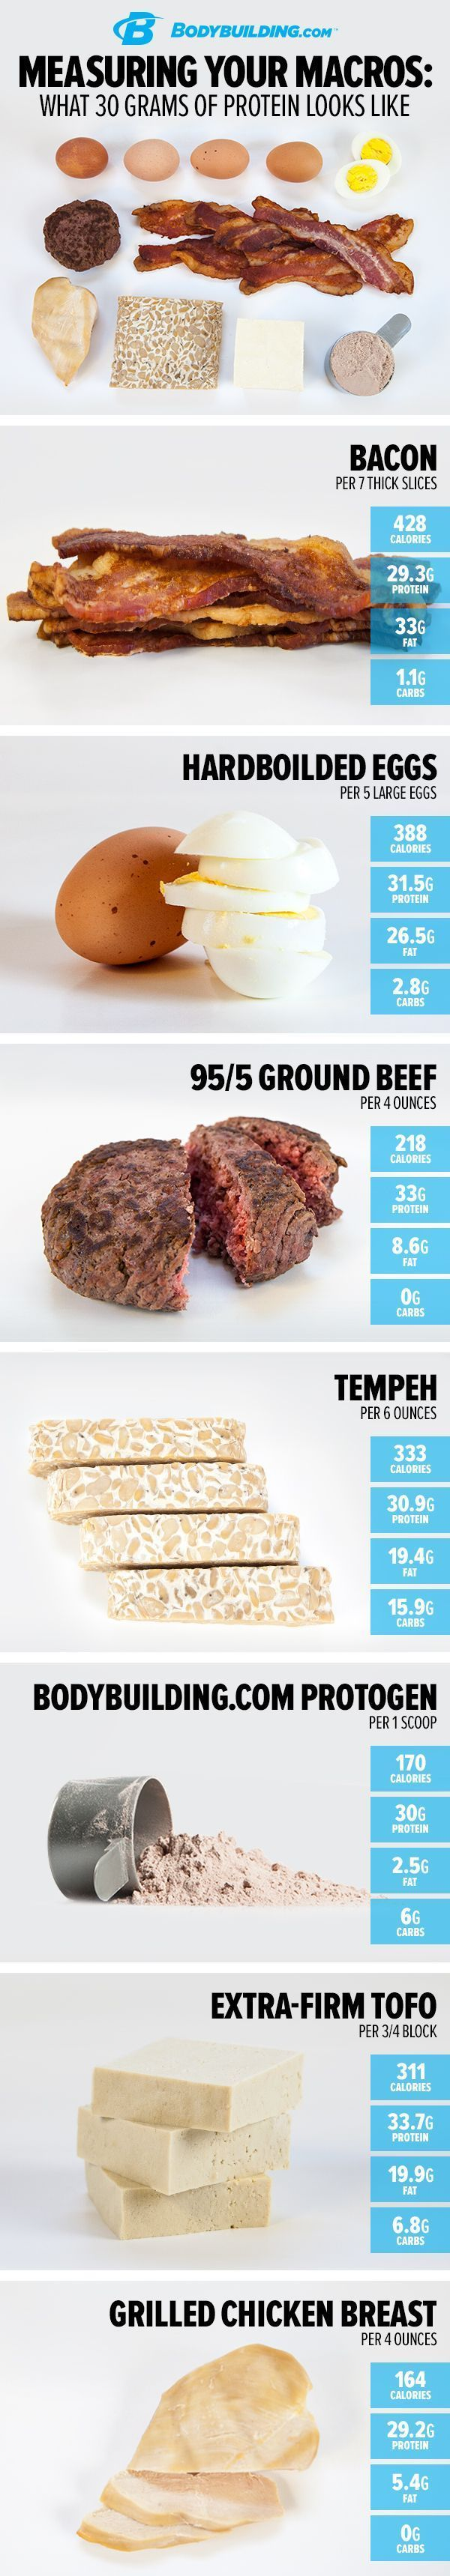 See more here ► https://www.youtube.com/watch?v=3qKhPjyBqW0 Tags: dramatic weight loss tips - Measuring Your Macros: What 30 Grams of Protein Looks Like! Want to build muscle and lose fat? Then you need protein! Here's how much you need and how to measure it for each meal. Bodybuilding.com